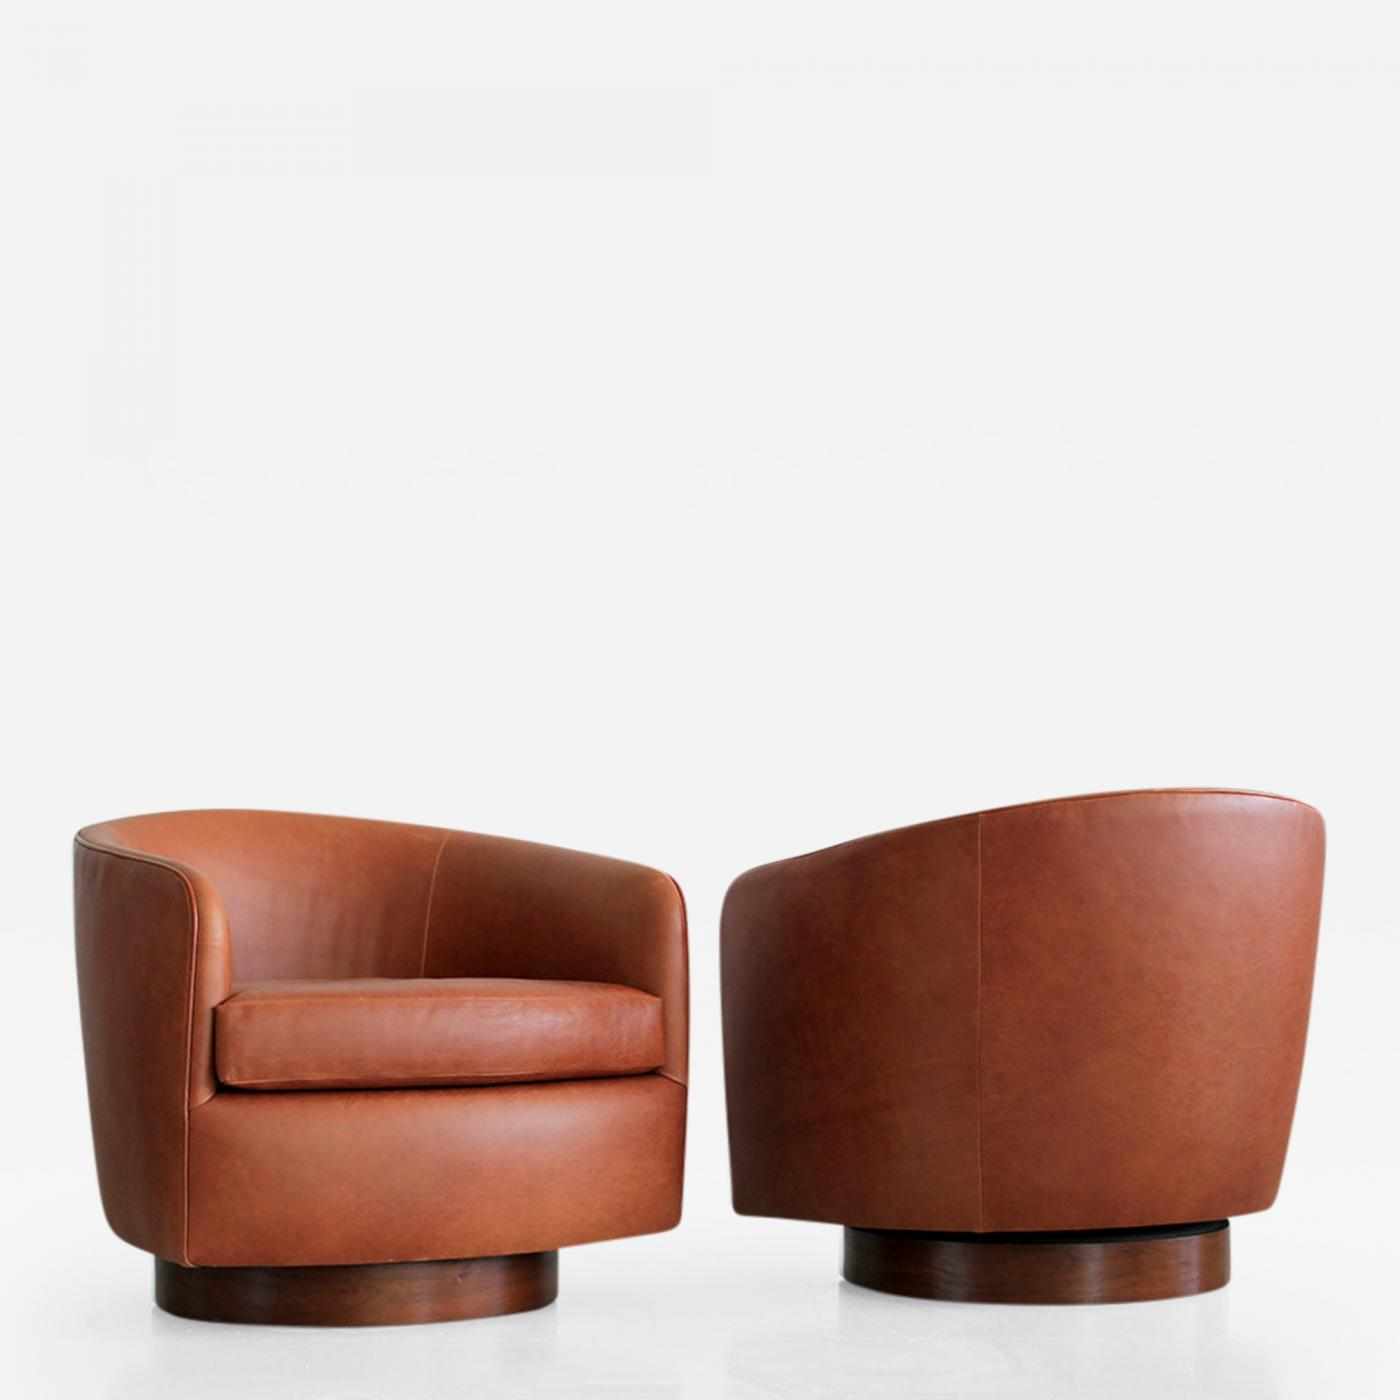 Brilliant Milo Baughman Saddle Leather Swivel Chairs In The Style Of Milo Baughman Caraccident5 Cool Chair Designs And Ideas Caraccident5Info